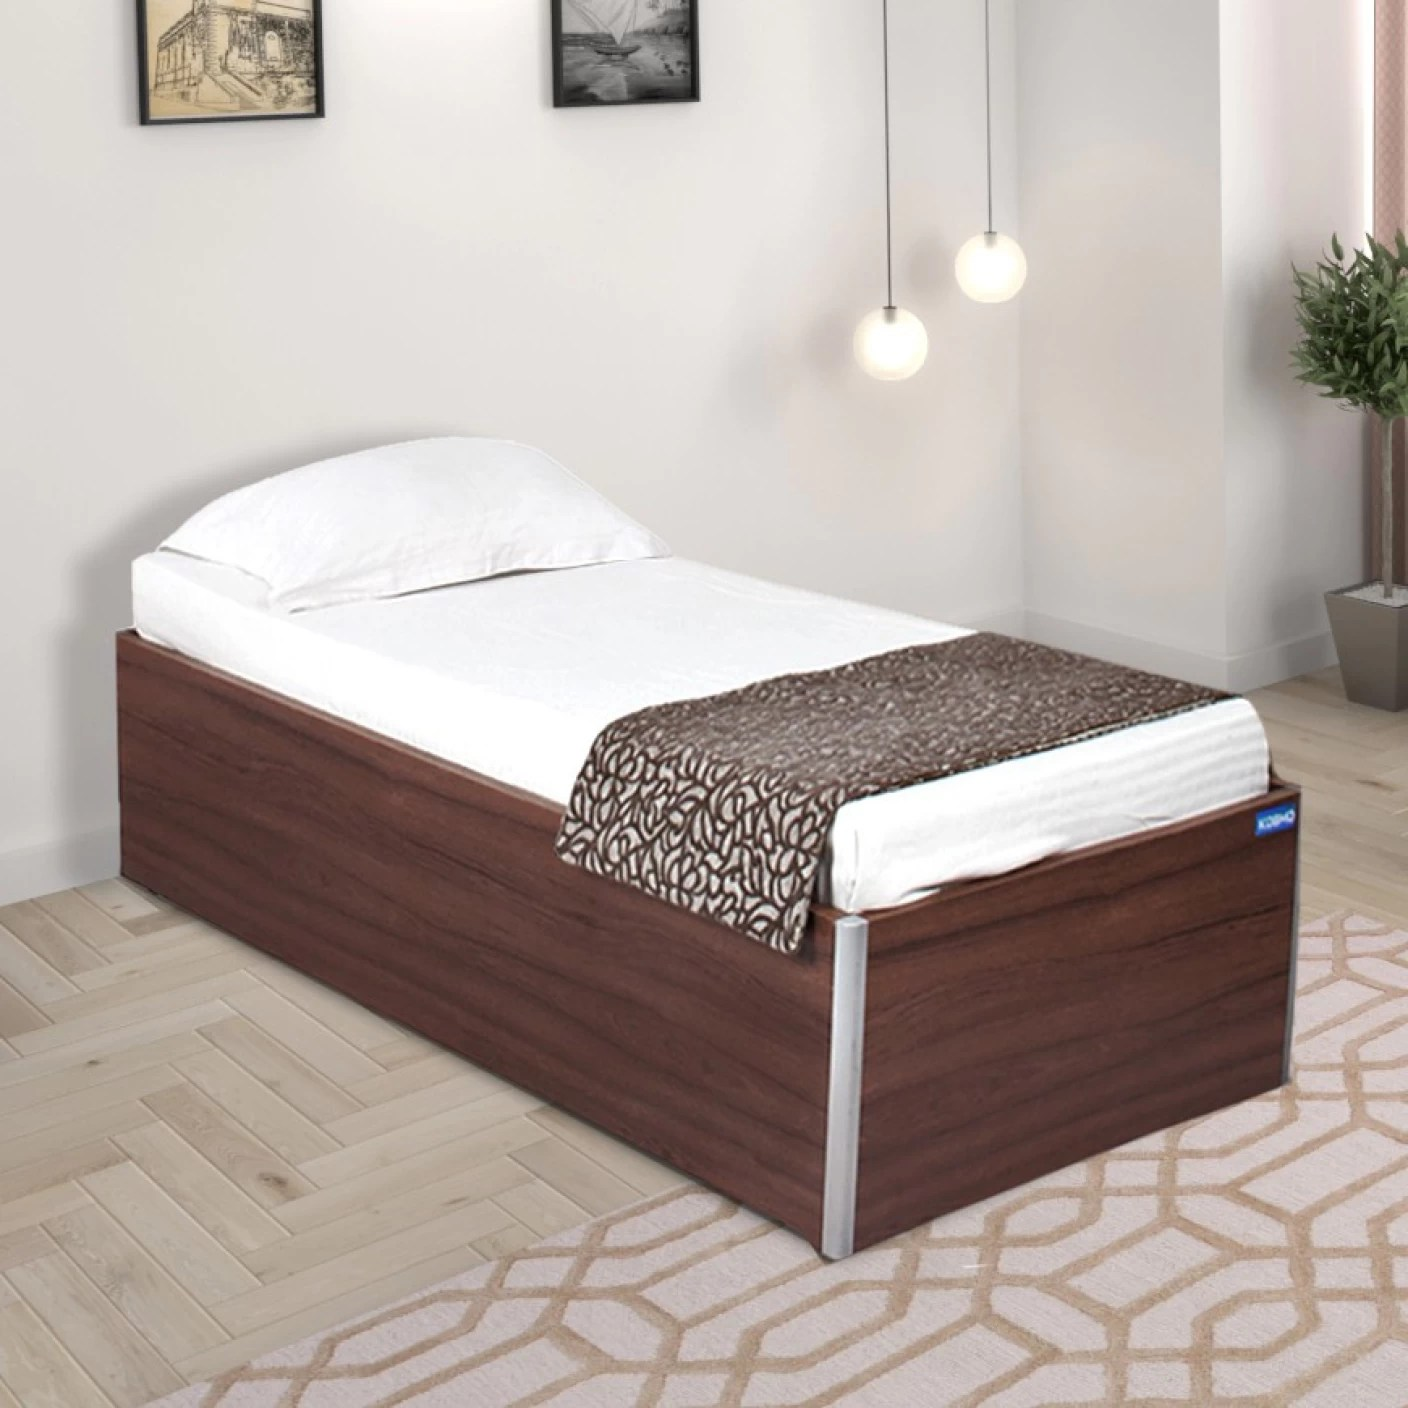 Single Bed Price Spacewood Day Engineered Wood Single Bed With Storage